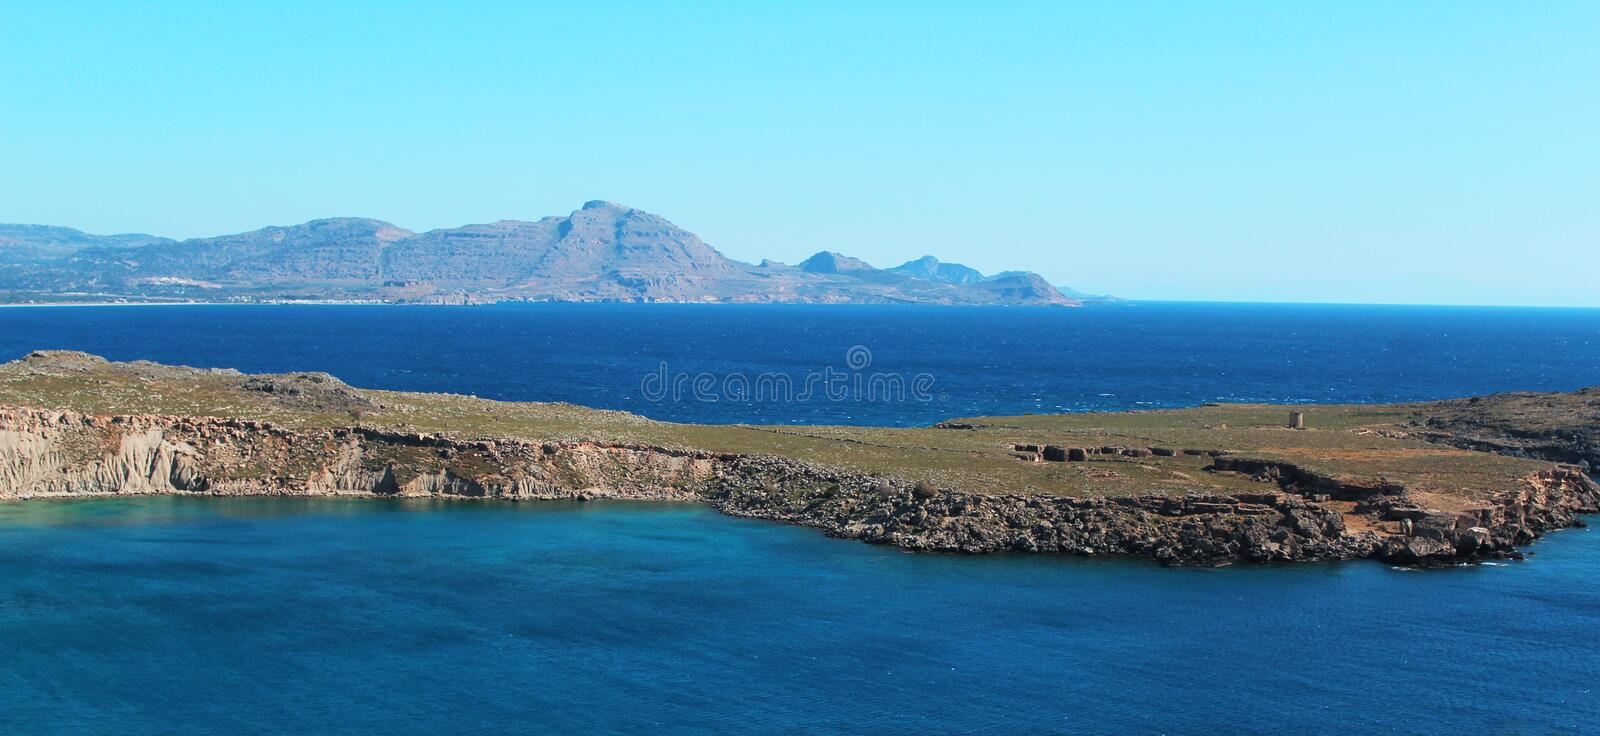 Greek coastal landscape - Rhodes, perfect for commercial royalty free stock photos